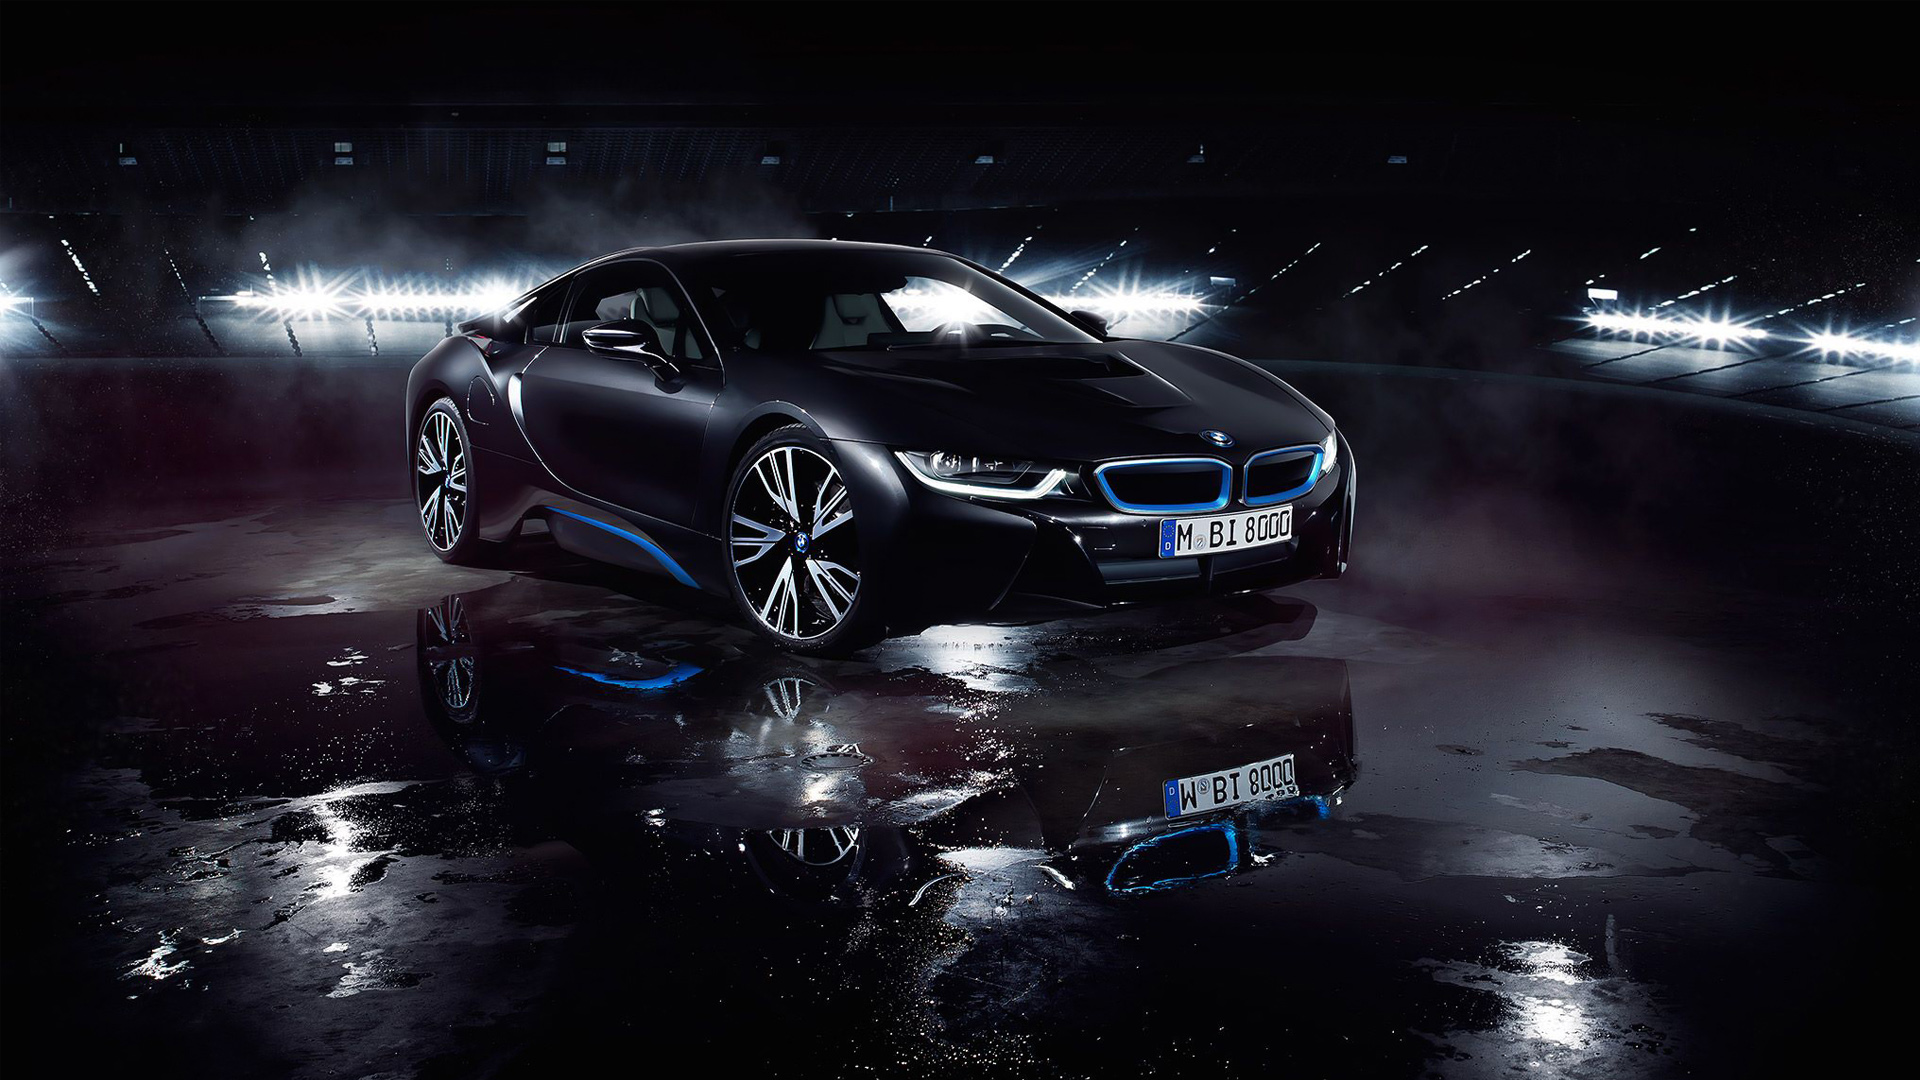 bmw i8 matte black wallpaper | hd car wallpapers | id #5789